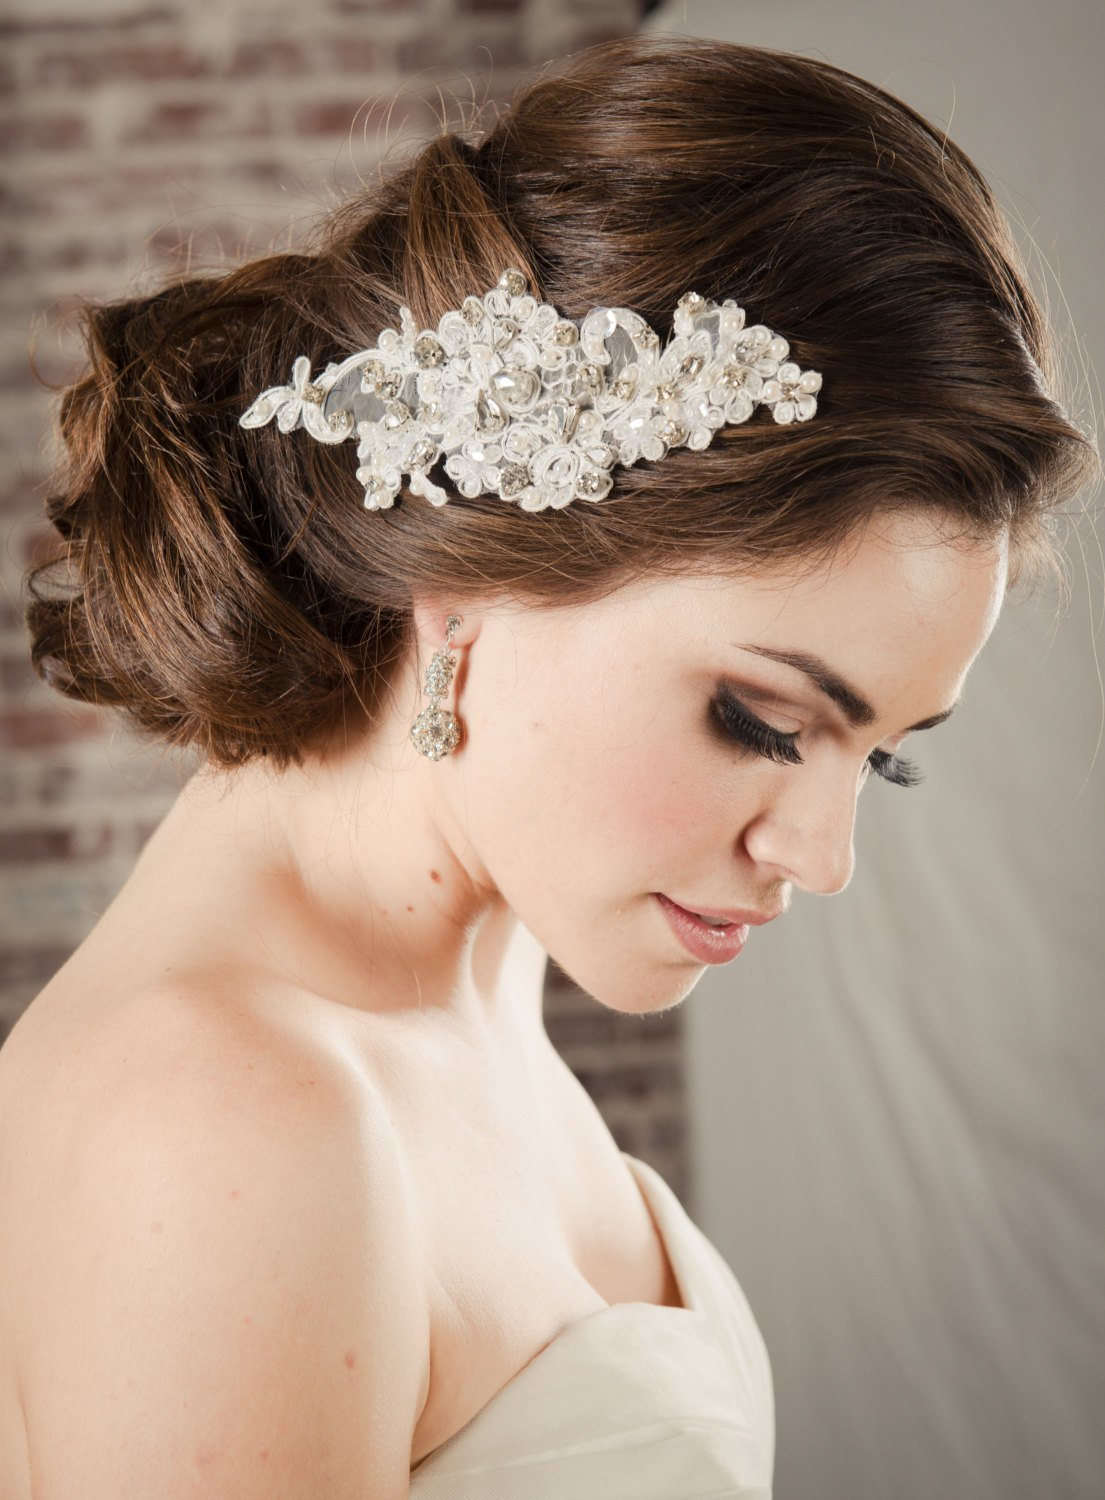 The Best Hair Accessories Bridal Lace Comb Pearl Rhinestone Pictures